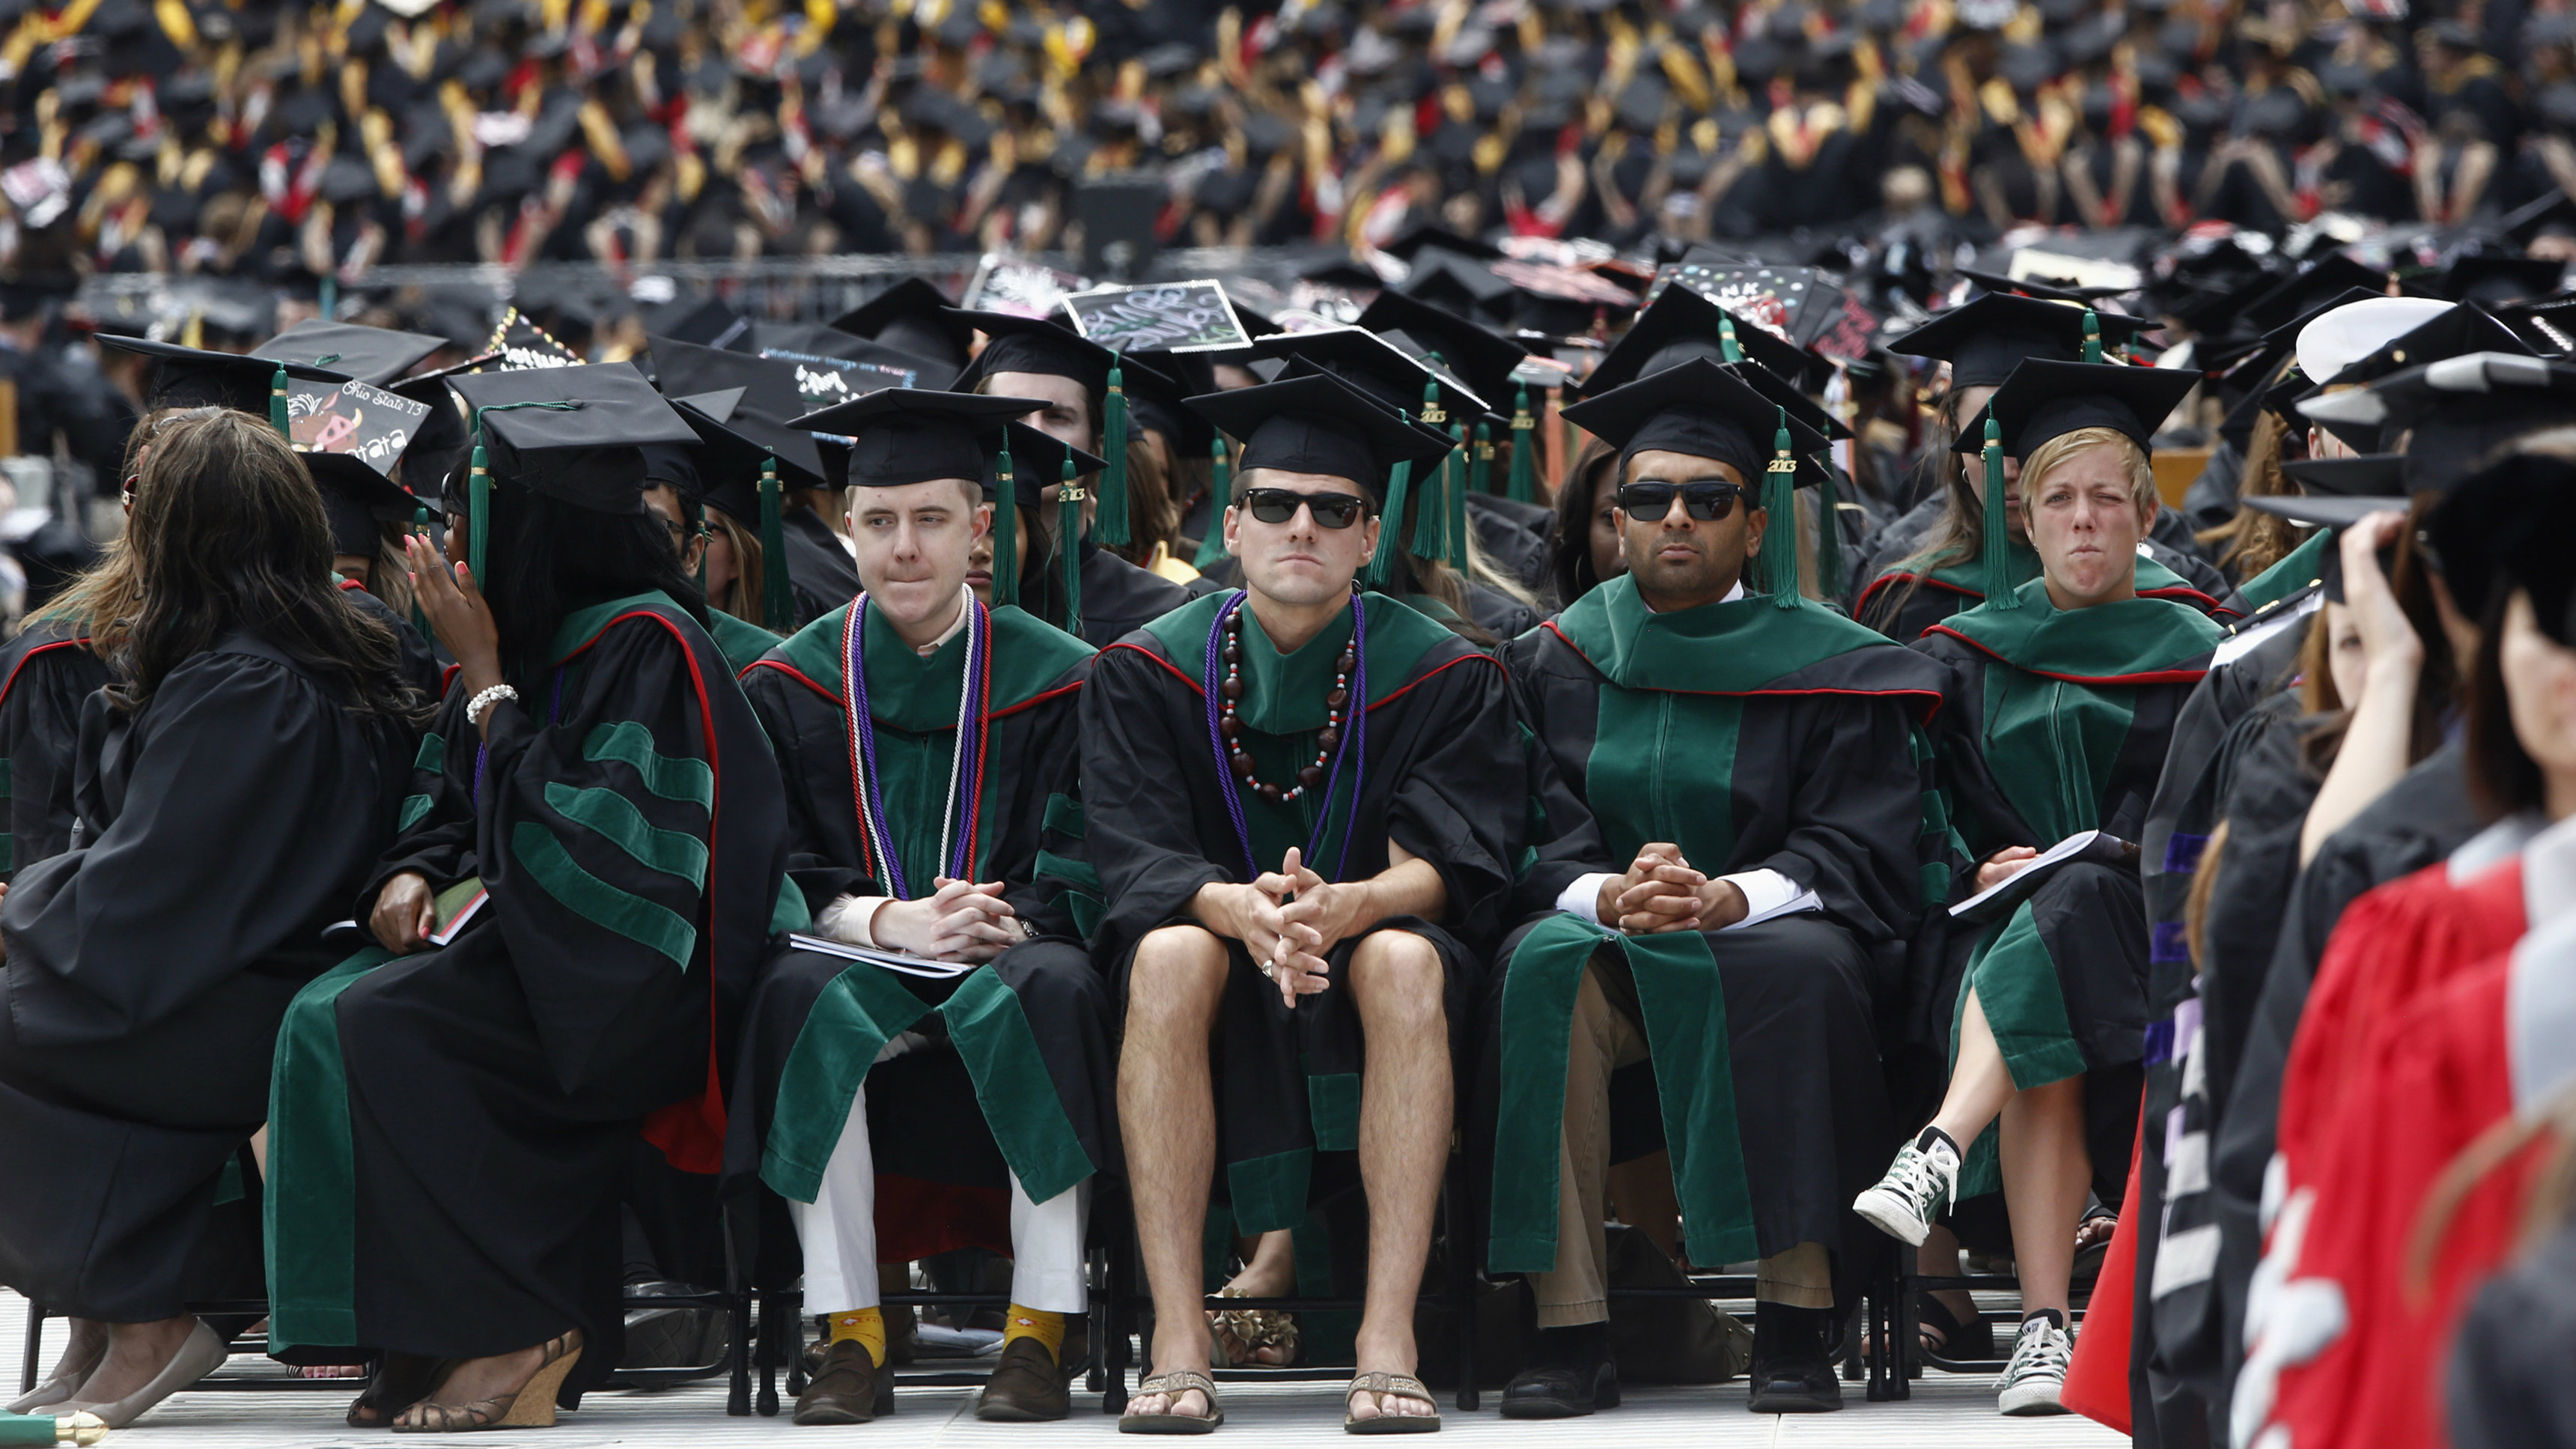 Your college major is a pretty good indication of how smart